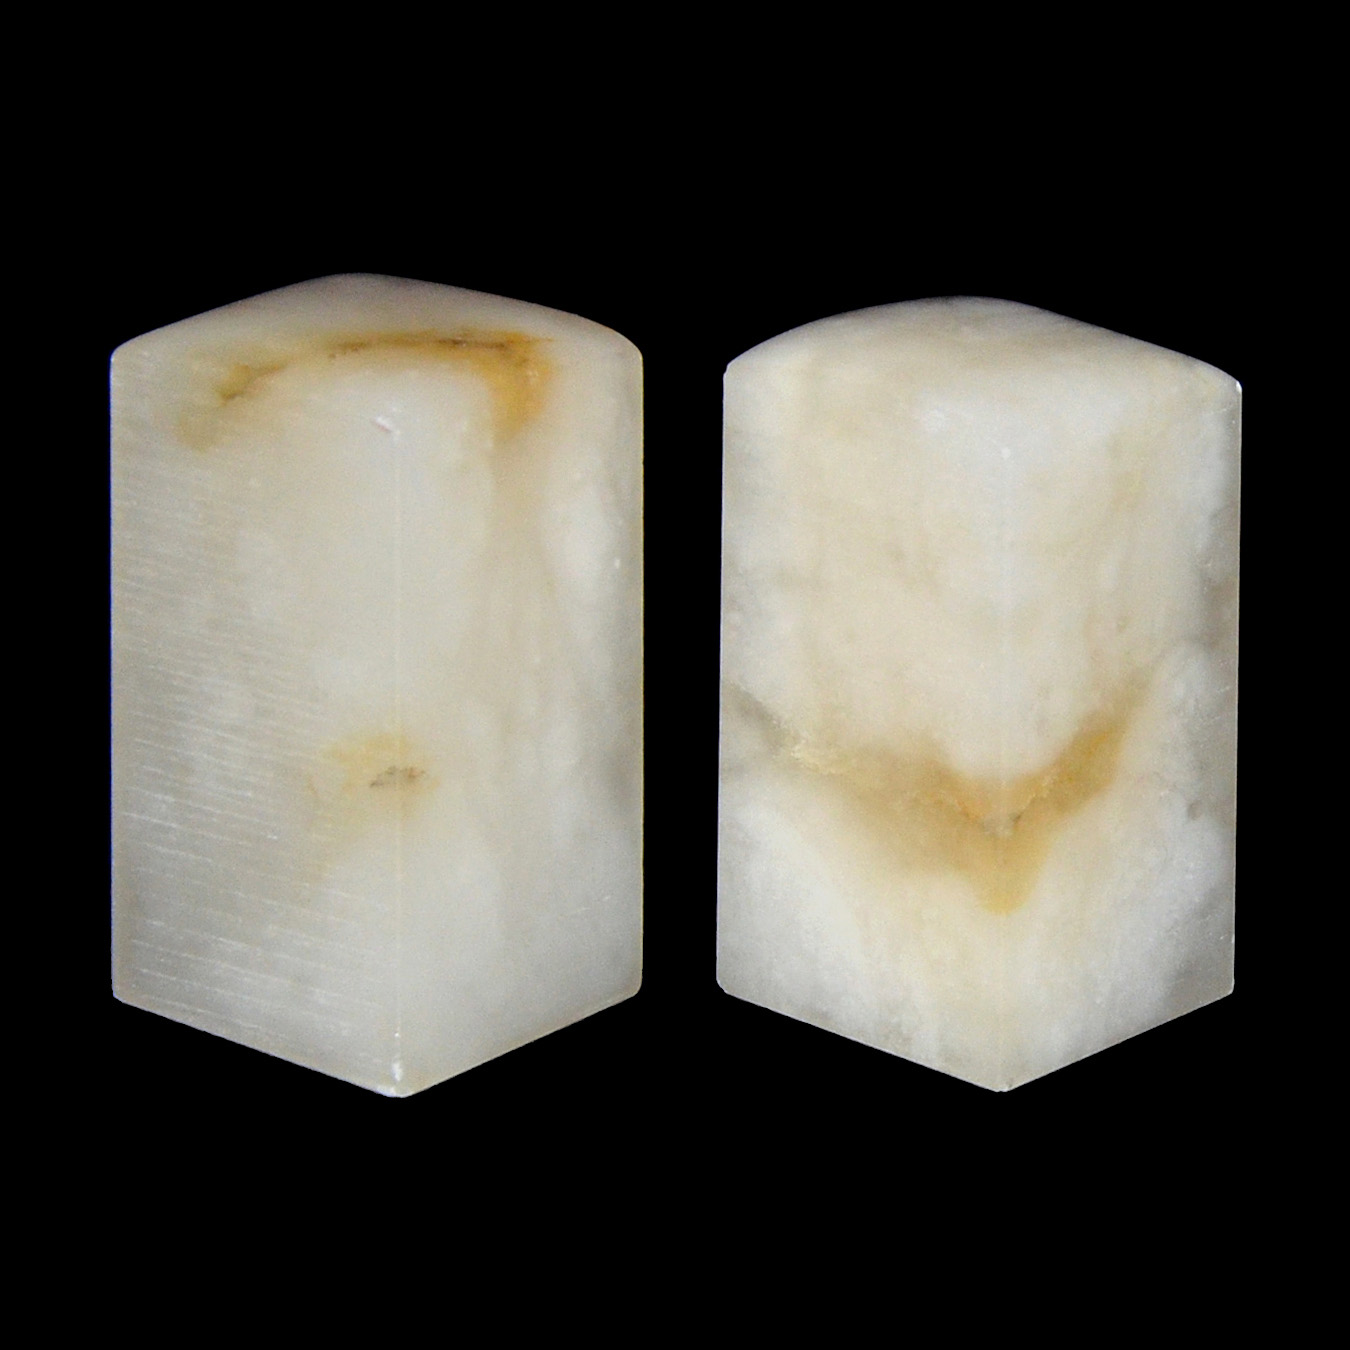 Lot 47 - 白芙蓉荔枝凍印料一對 A Pair of Columnar Icy-Glazed Furong Stone Seal Height: 2¼ in (5.7 cm) x 2 Weight: 123 g,